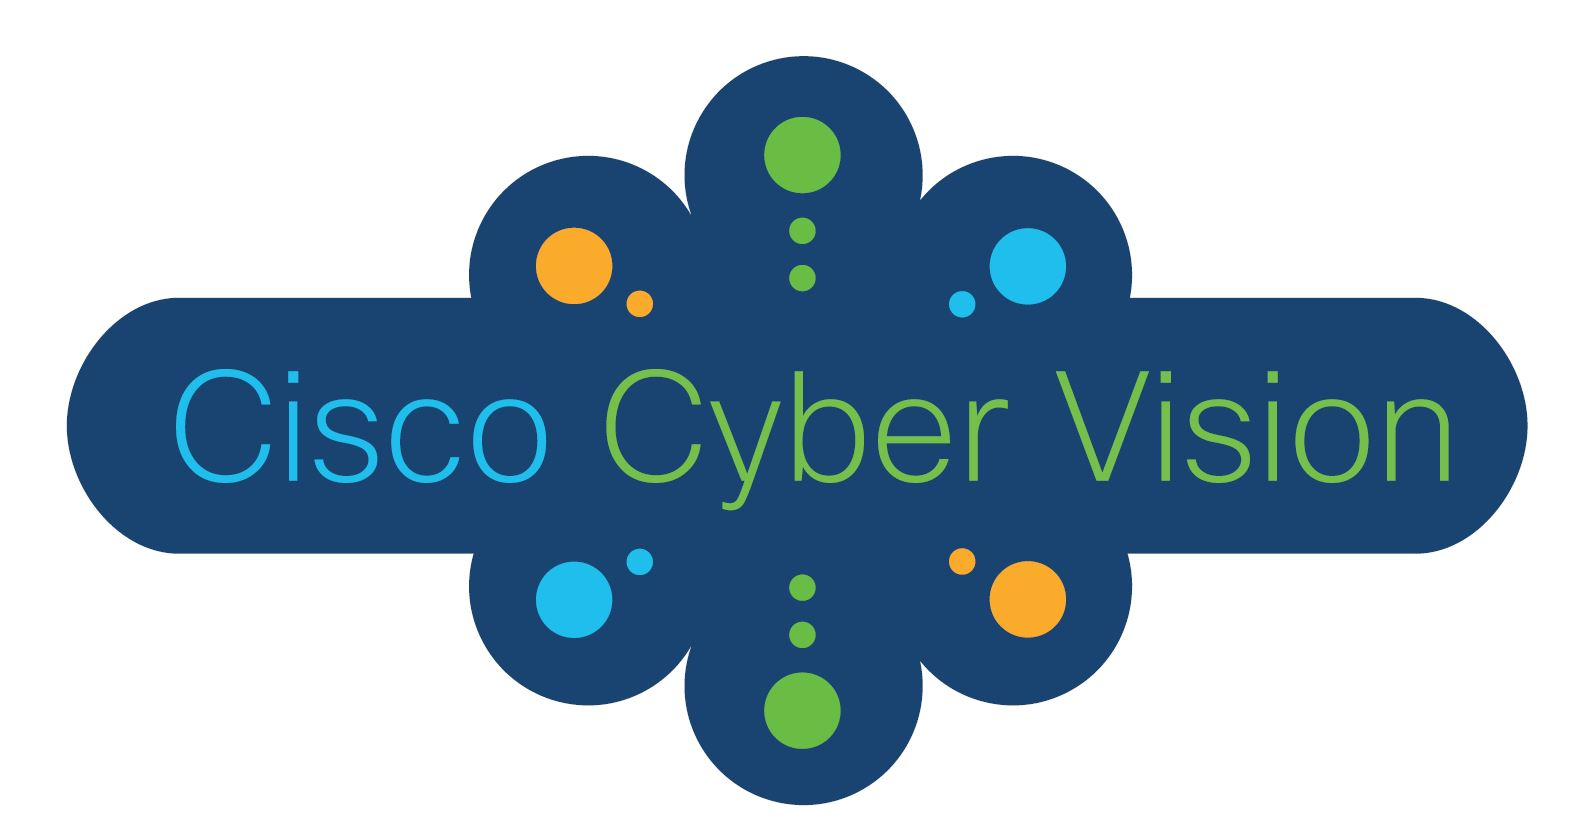 Cyber Vision leverages Cisco industrial network equipment to monitor industrial operations and feeds Cisco IT security platforms with OT context to build a unified IT/OT cybersecurity architecture